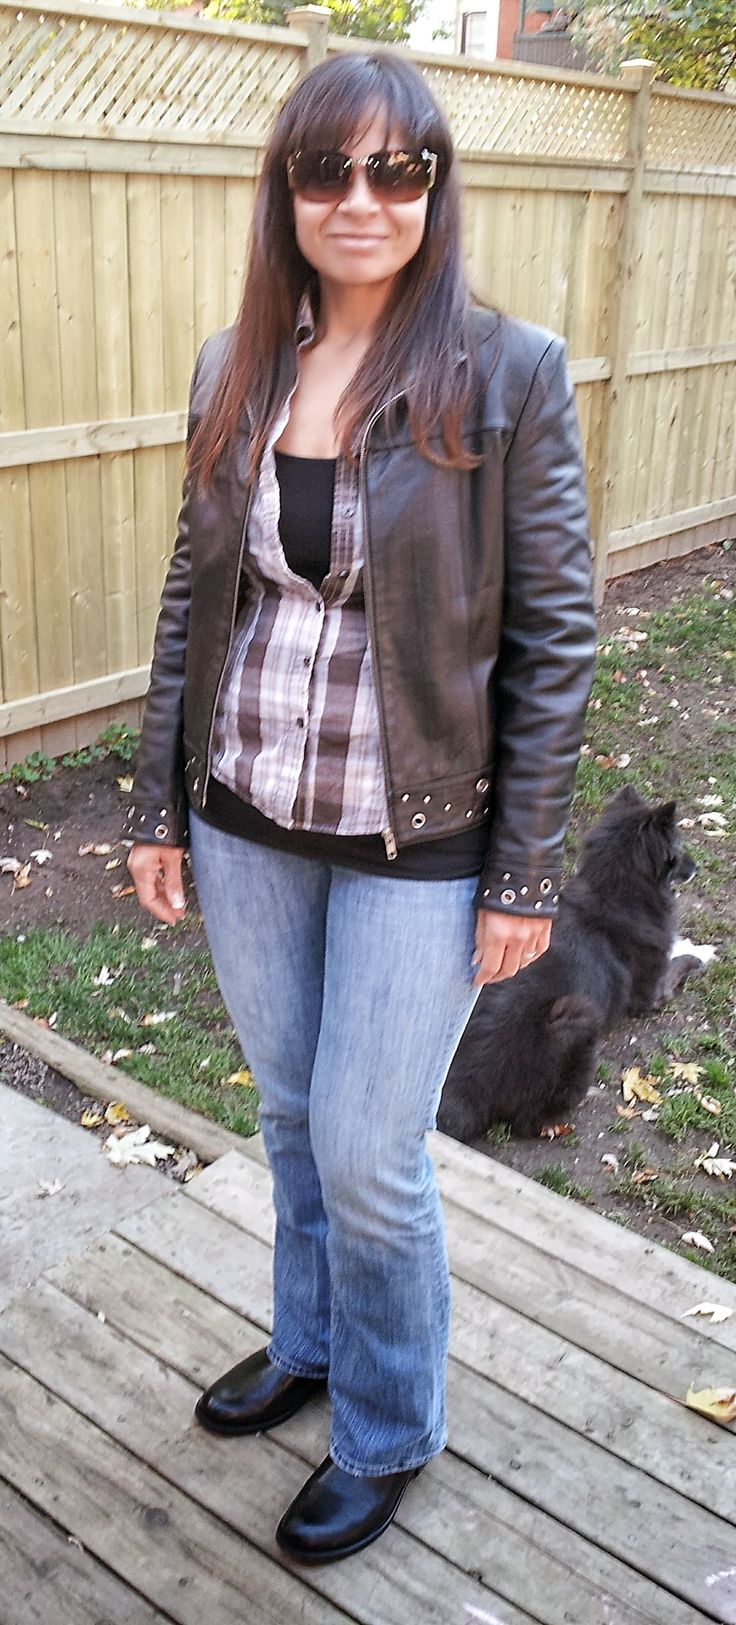 This entire outfit (including biker boots and 100% leather jacket) cost me $42.  The biker boots were in the men's department at #Walmart on clearance for $15, the jeans are from #ValueVillage (#AmericanEagle) $8, the tank is from #OldNavy $2, the chekered shirt was a hand-me-down from a girlfriend, the #bikerjacket was from Value Village $12, the shades $5 clearance from #Reitmans.  I'm an awesome shopper!